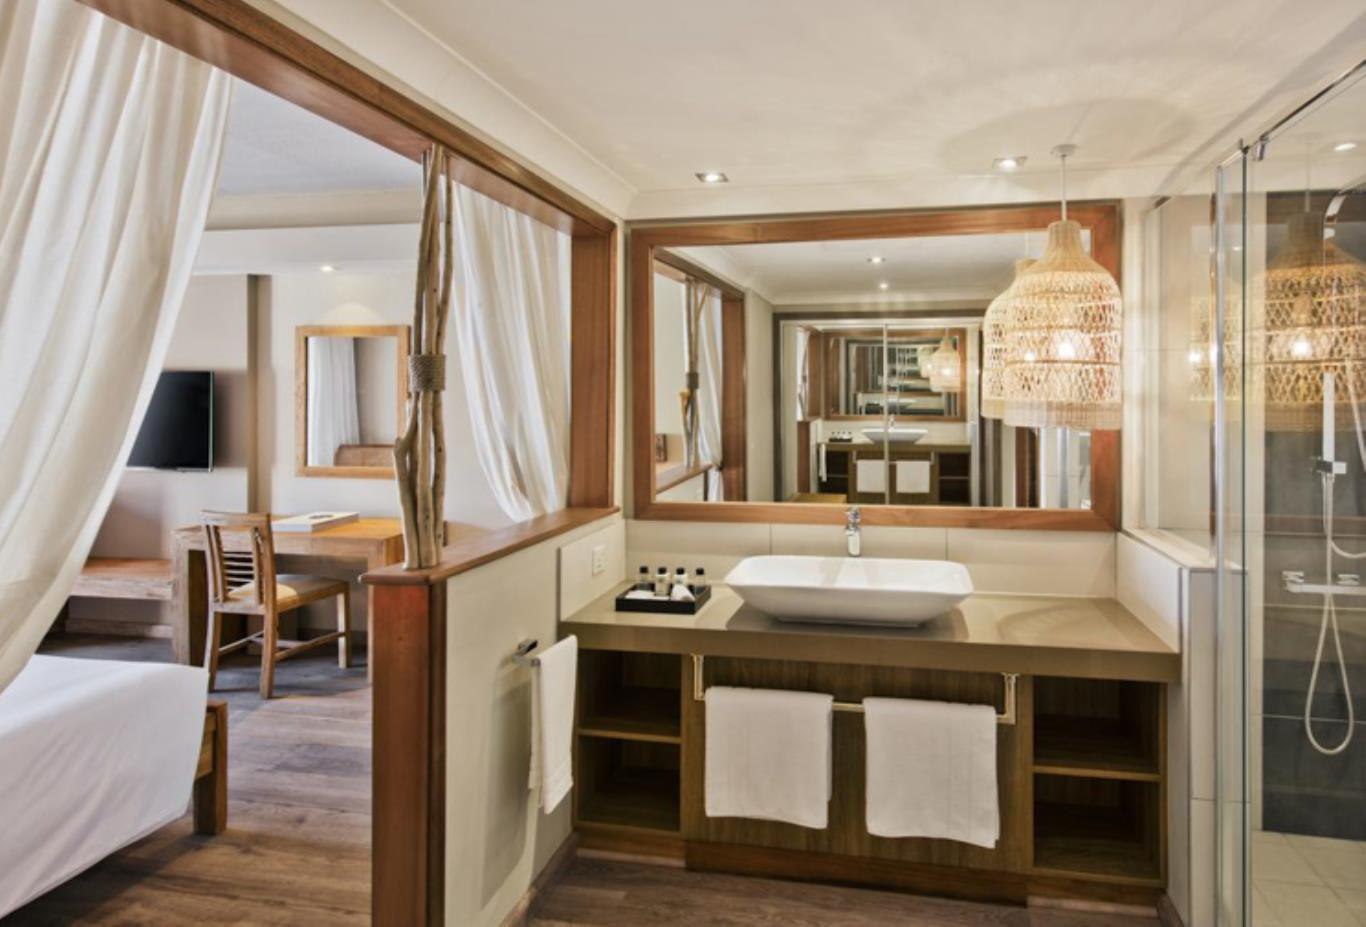 Prestige bathroom and bedroom